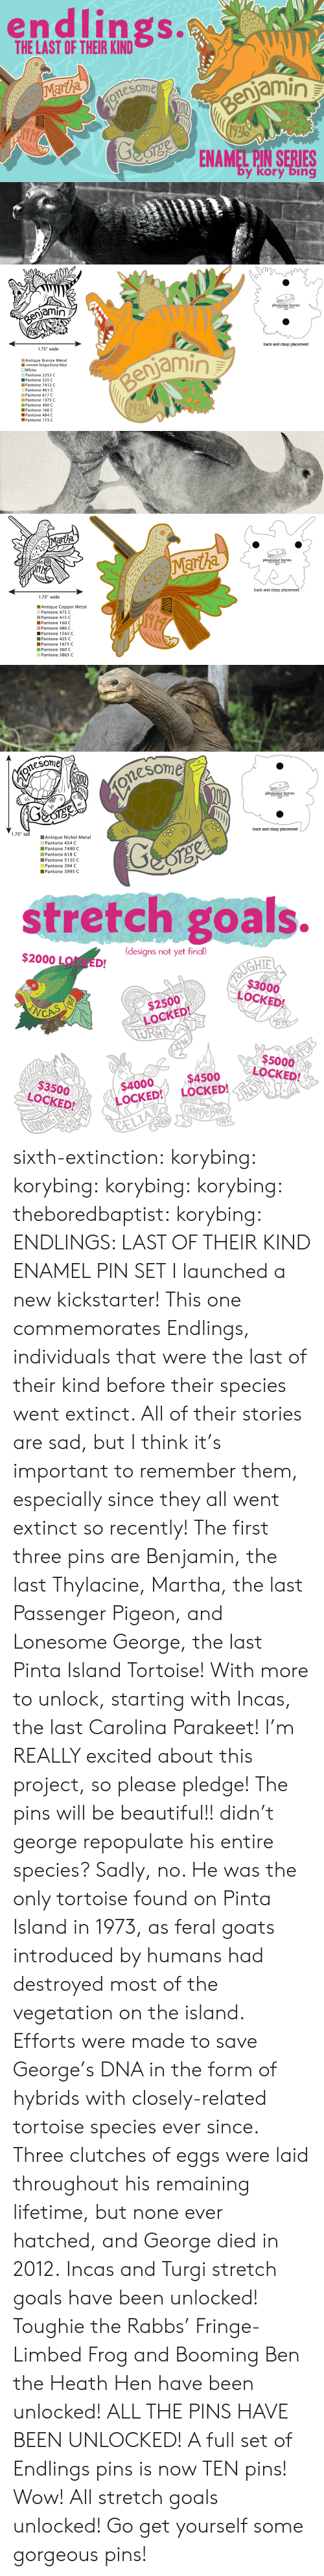 "pledge: endlings  THE LAST OF THEIR KIND  Marta  AOnesone  Benjamin  1936  Gesge  ENAMEL PIN SERIES  by kory bing   plesiosaur bones  KORYG  Beniamin  back and clasp placement  1.75"" wide  Antique Bronze Metal  recessed Antique Bronze Metal  White  Pantone 2253 C  Benjamin  Pantone 555 C  Pantone 7412 C  Pantone 461C  Pantone 617 C  Pantone 1375 C  1936  Pantone 360 C  Pantone 160 C  Pantone 484 C  Pantone 173 C   Martha  Martha  plesiosaur bones  ORYG  back and clasp placement  1.75"" wide  Antique Copper Metal  Pantone 475 C  1911  Pantone 415 C  Pantone 160 C  Pantone 486 C  